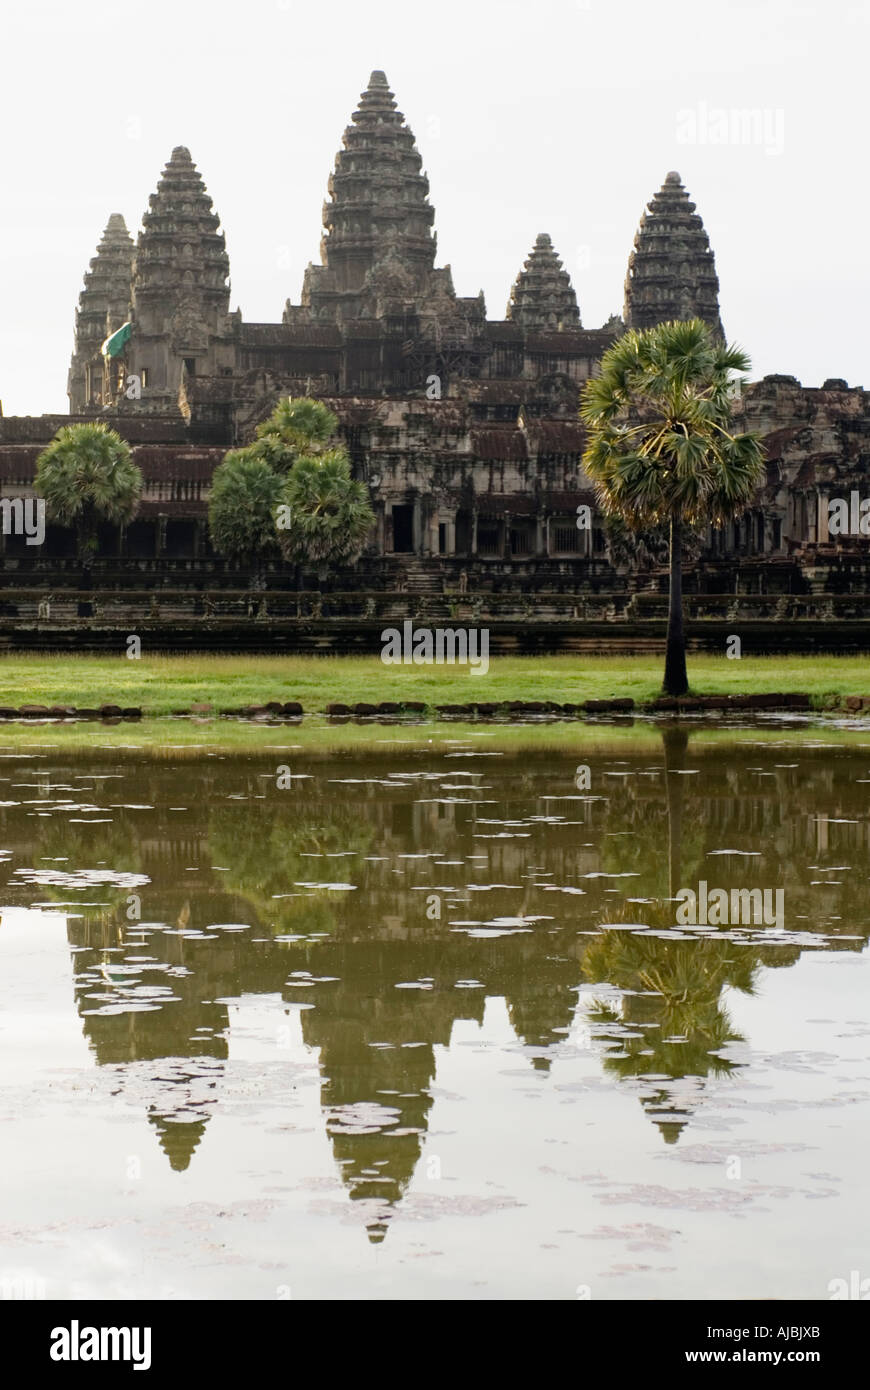 Cambodia Angkor Wat Reflection In Pond Siem Reap Stock Photo